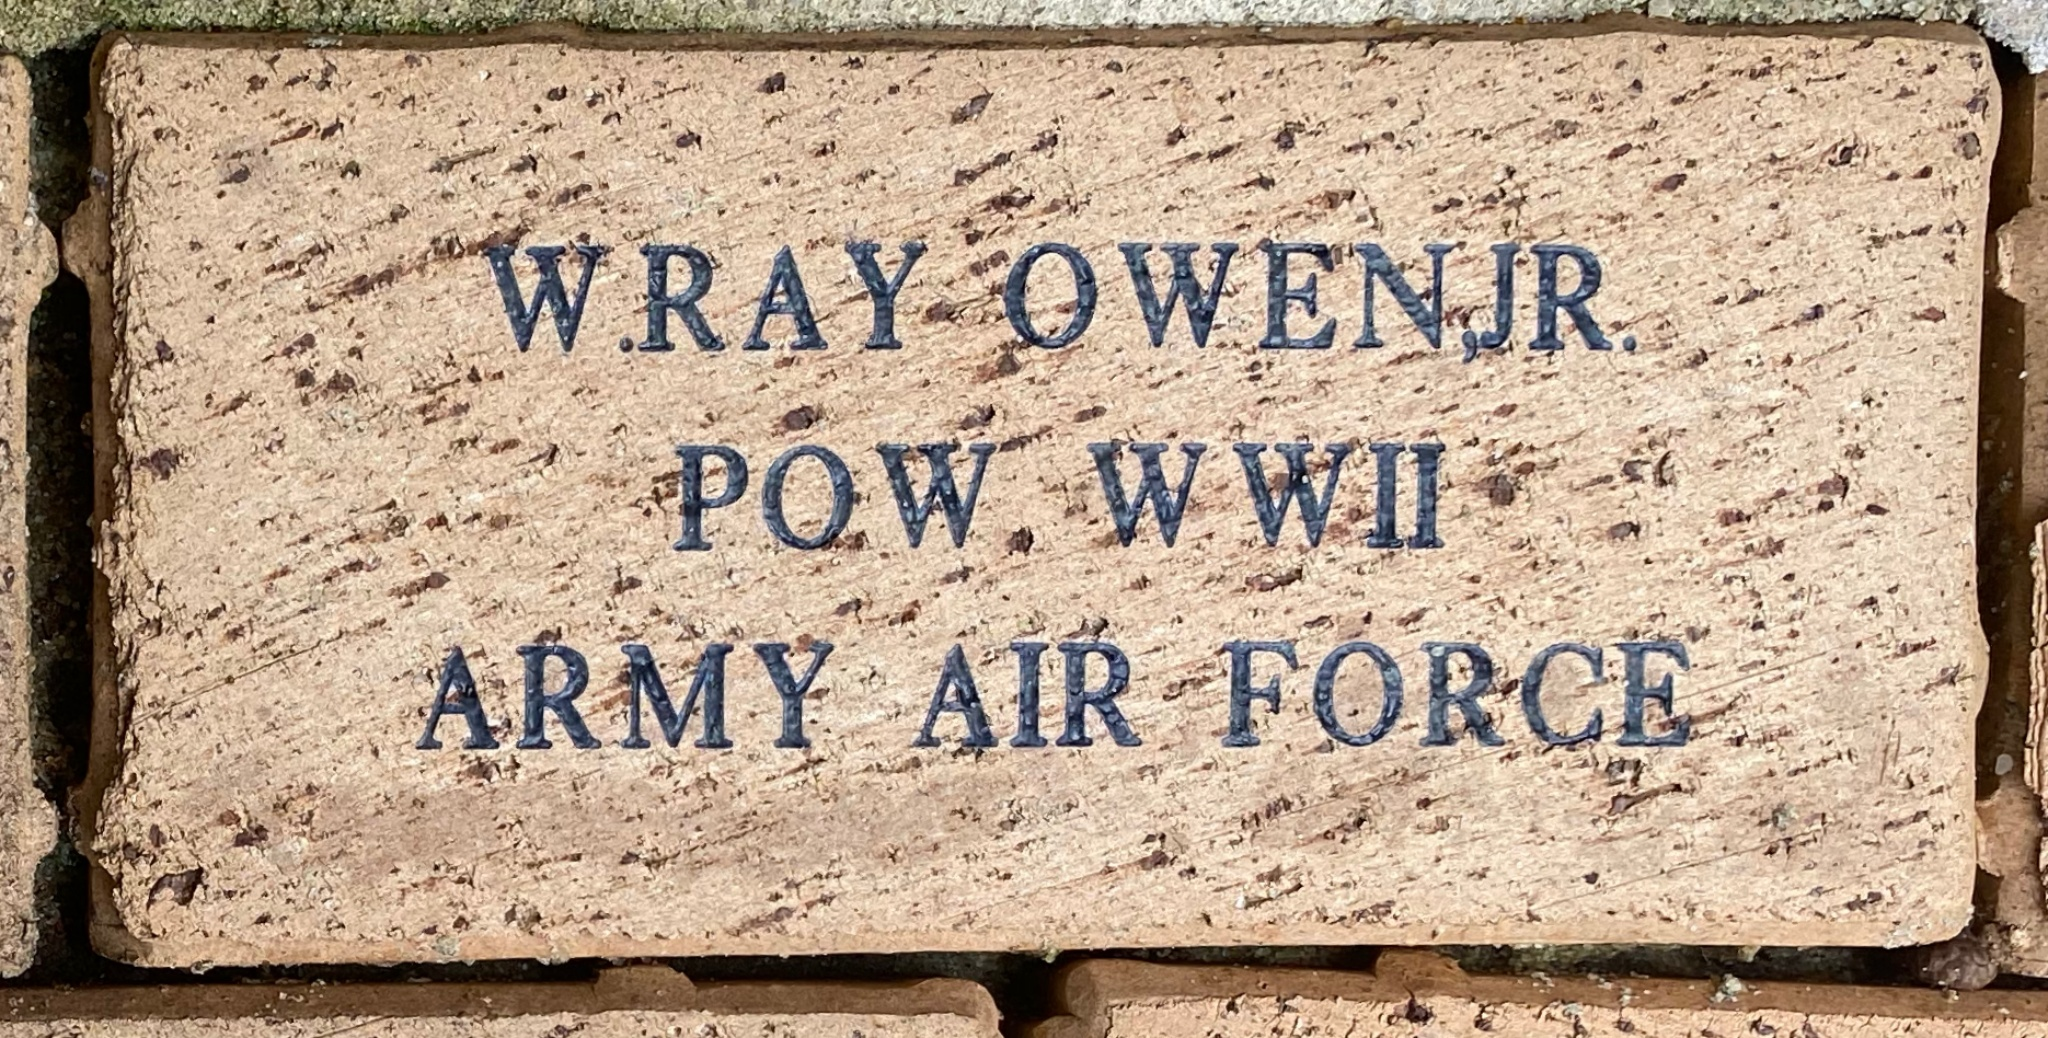 W. RAY OWEN,JR. POW WWII ARMY AIR FORCE